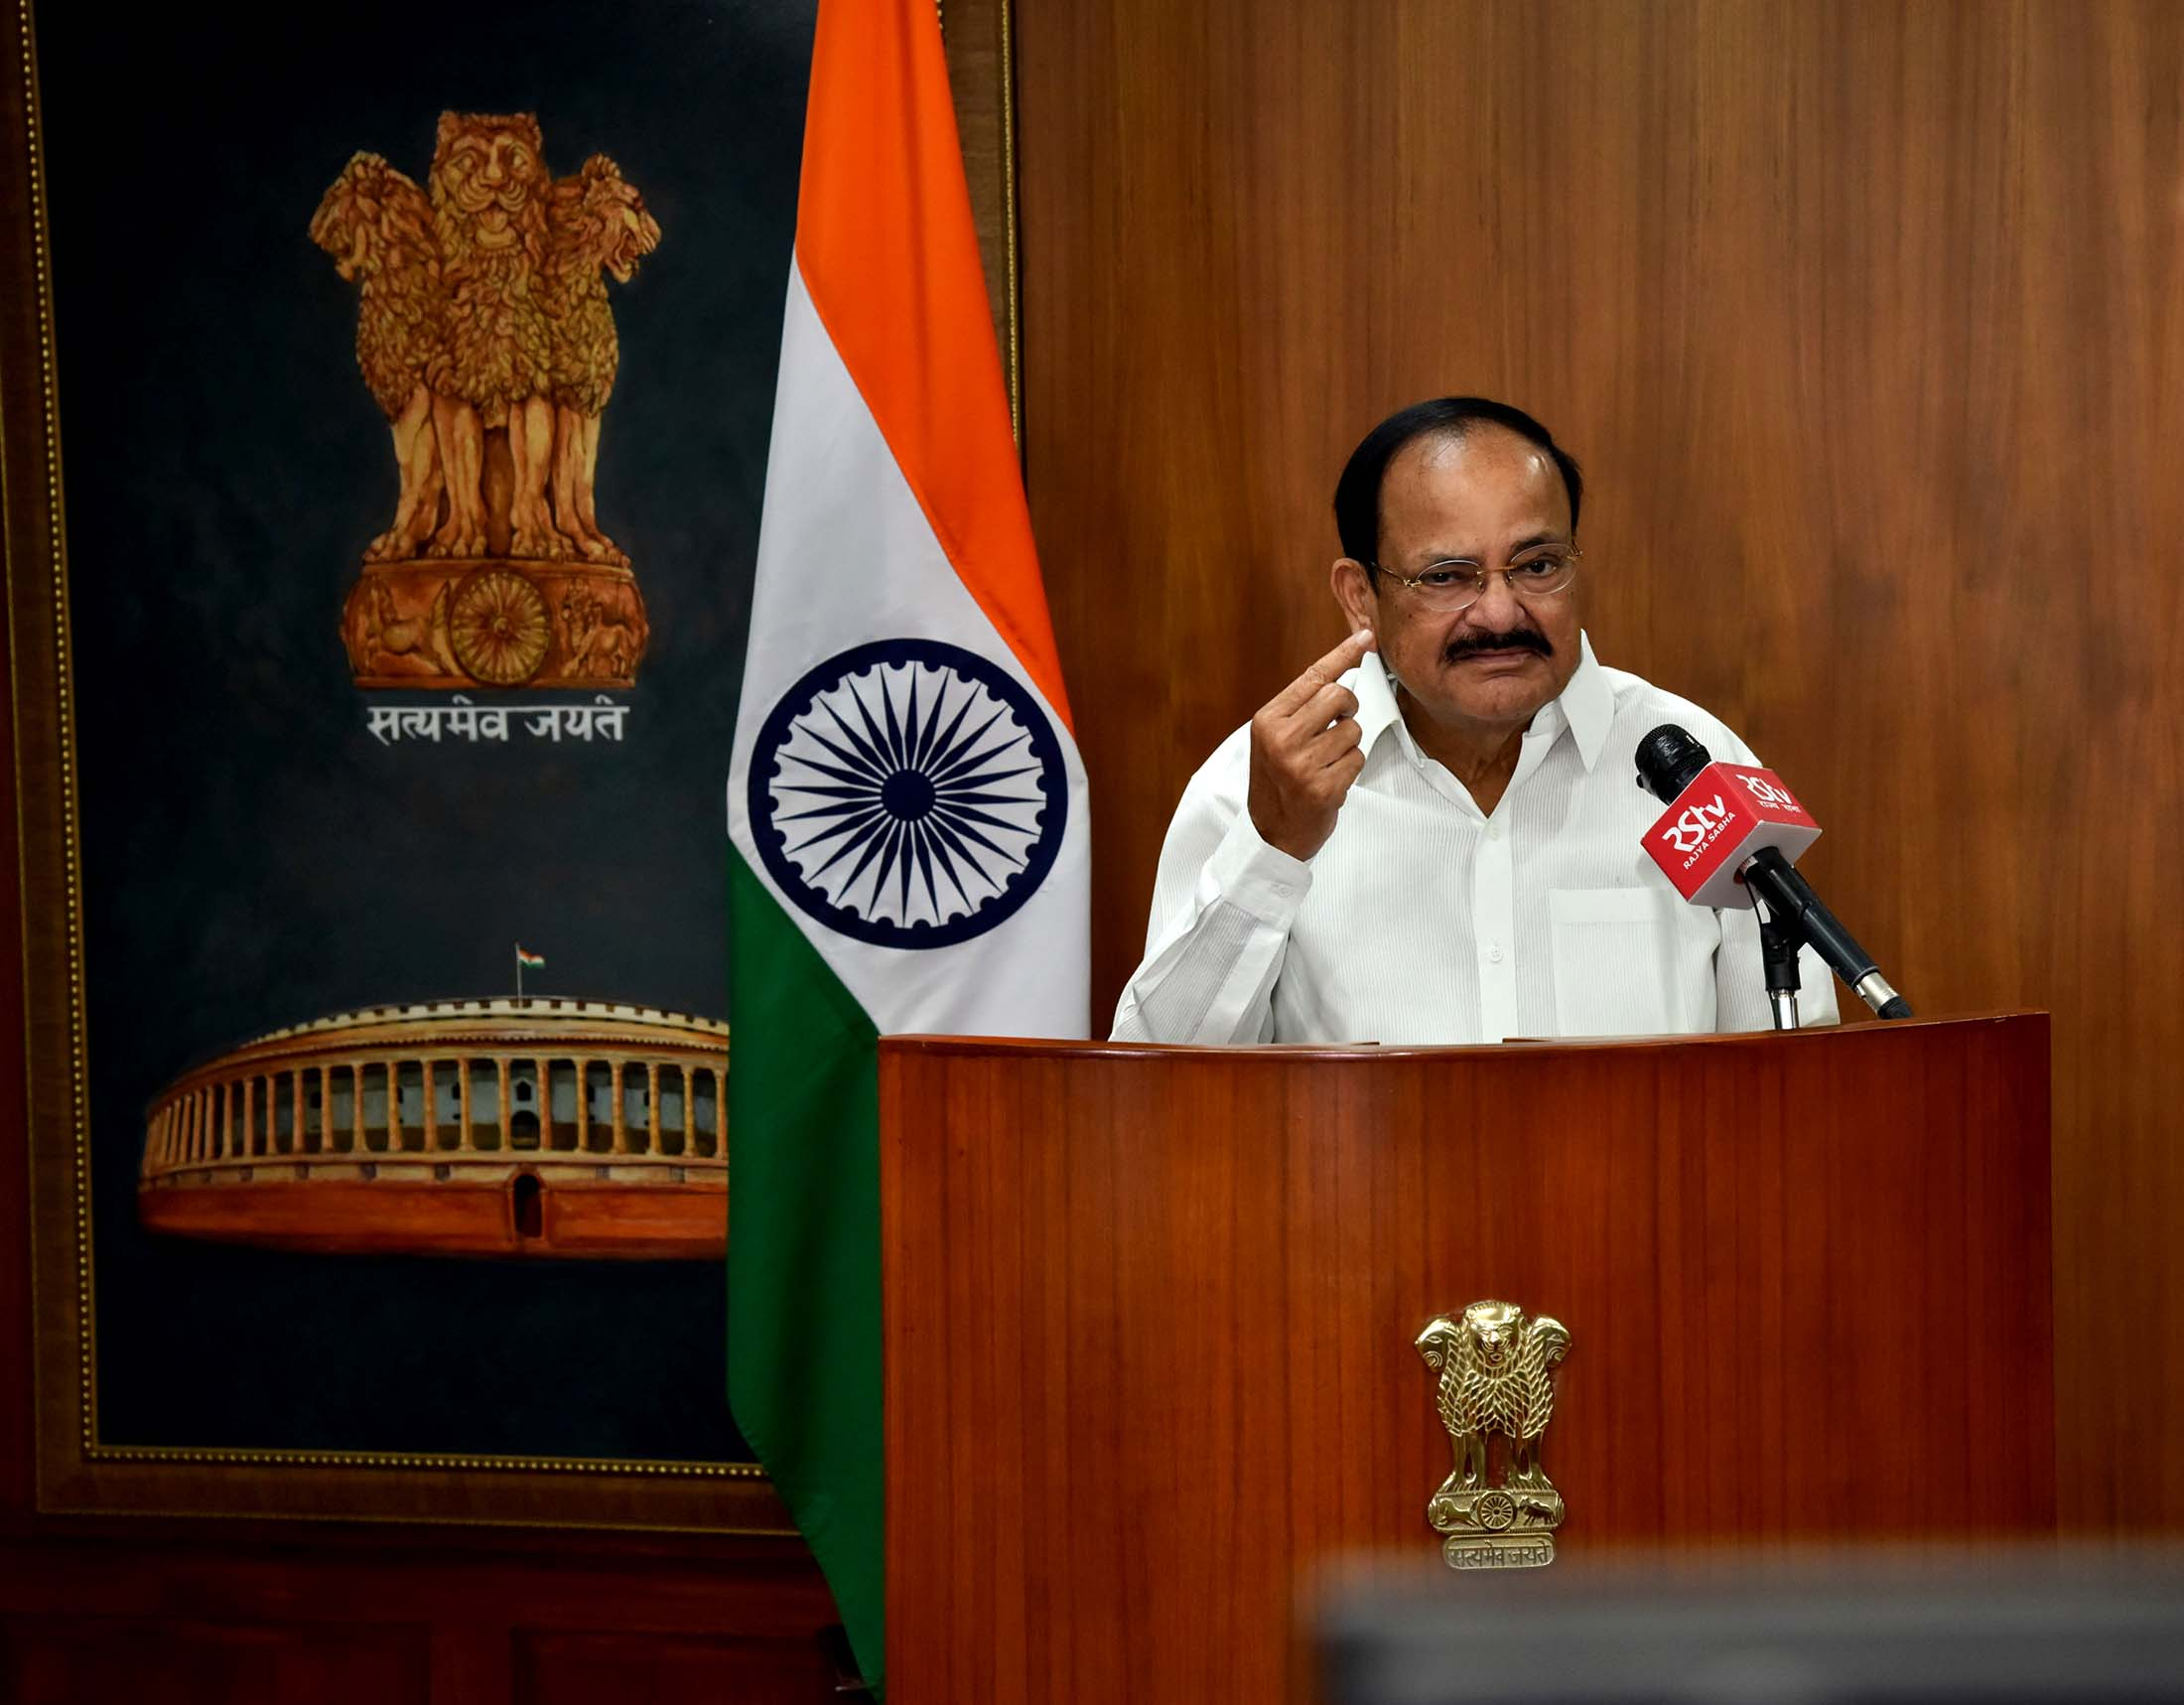 The Vice President, Shri M. Venkaiah Naidu addressing the gathering at the virtual Launch of the Heartfulness All India Essay Event 2020 in New Delhi on 11 September 2020